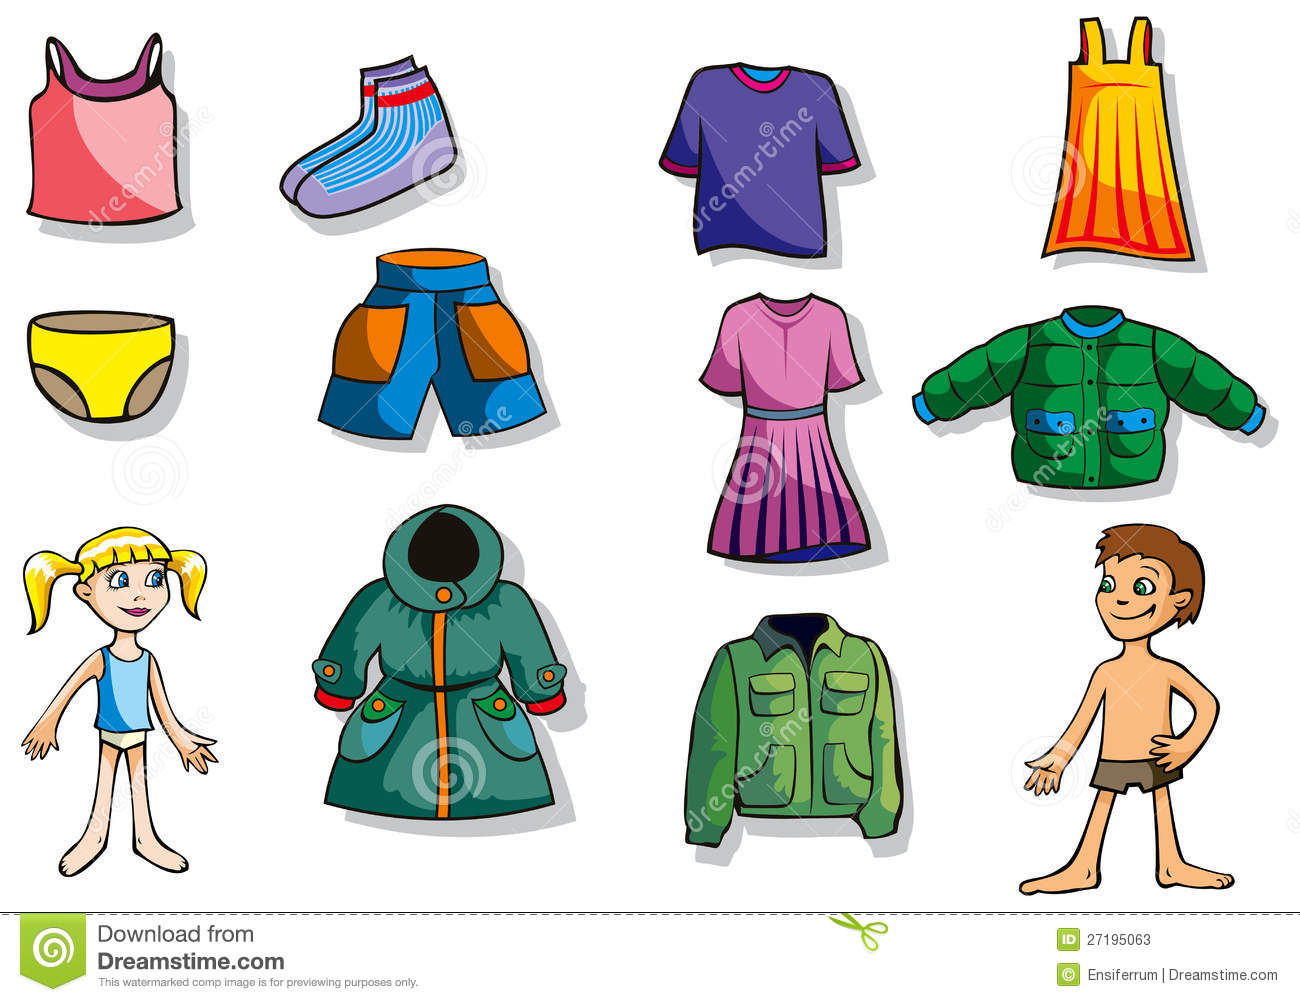 Set of cartoon clothes for girl and boy, vector illustration.